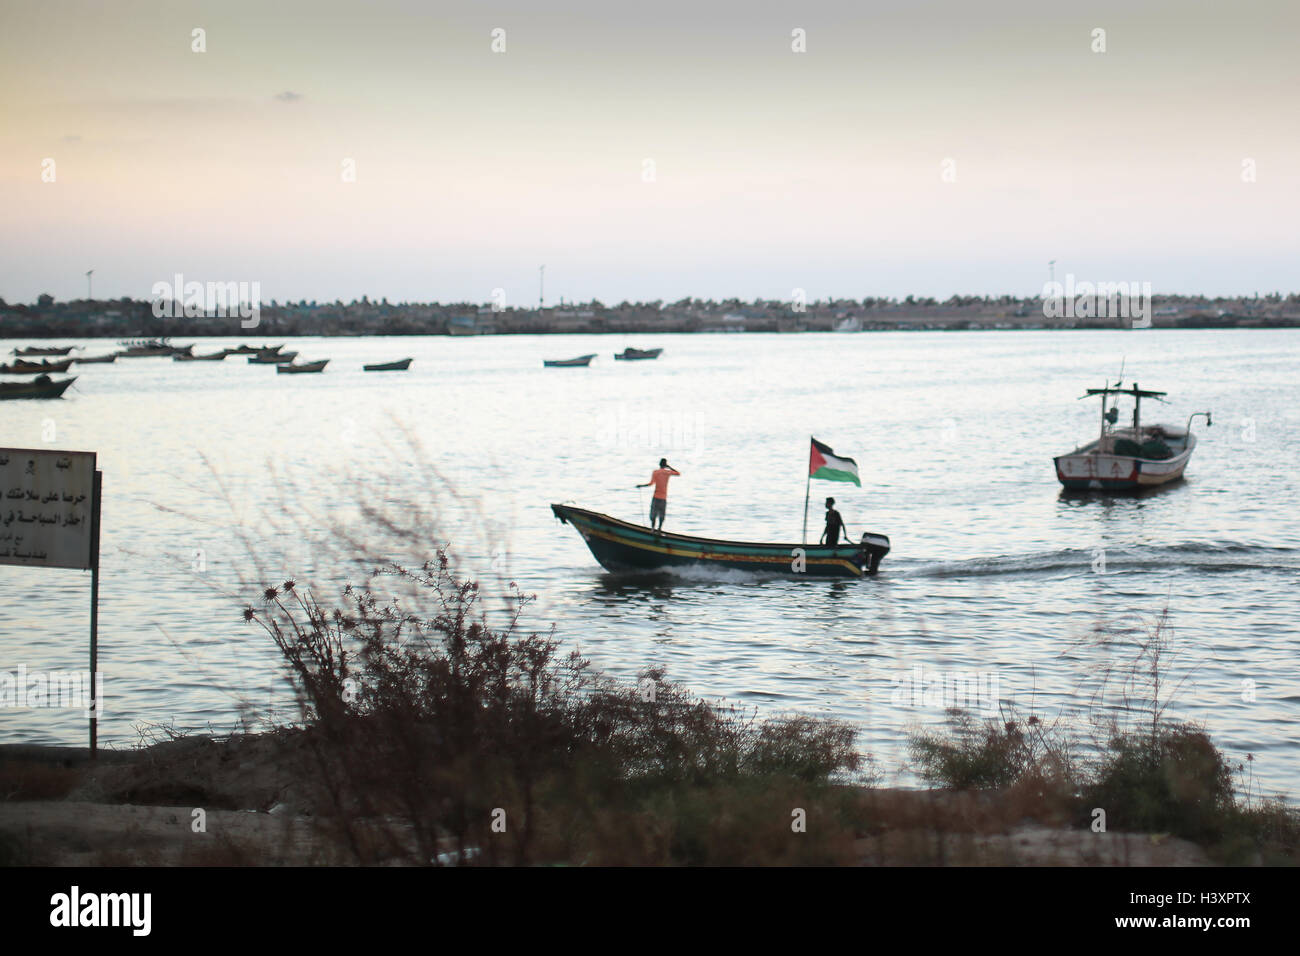 A fishing boat in Gaza flying a Palestinian flag. - Stock Image